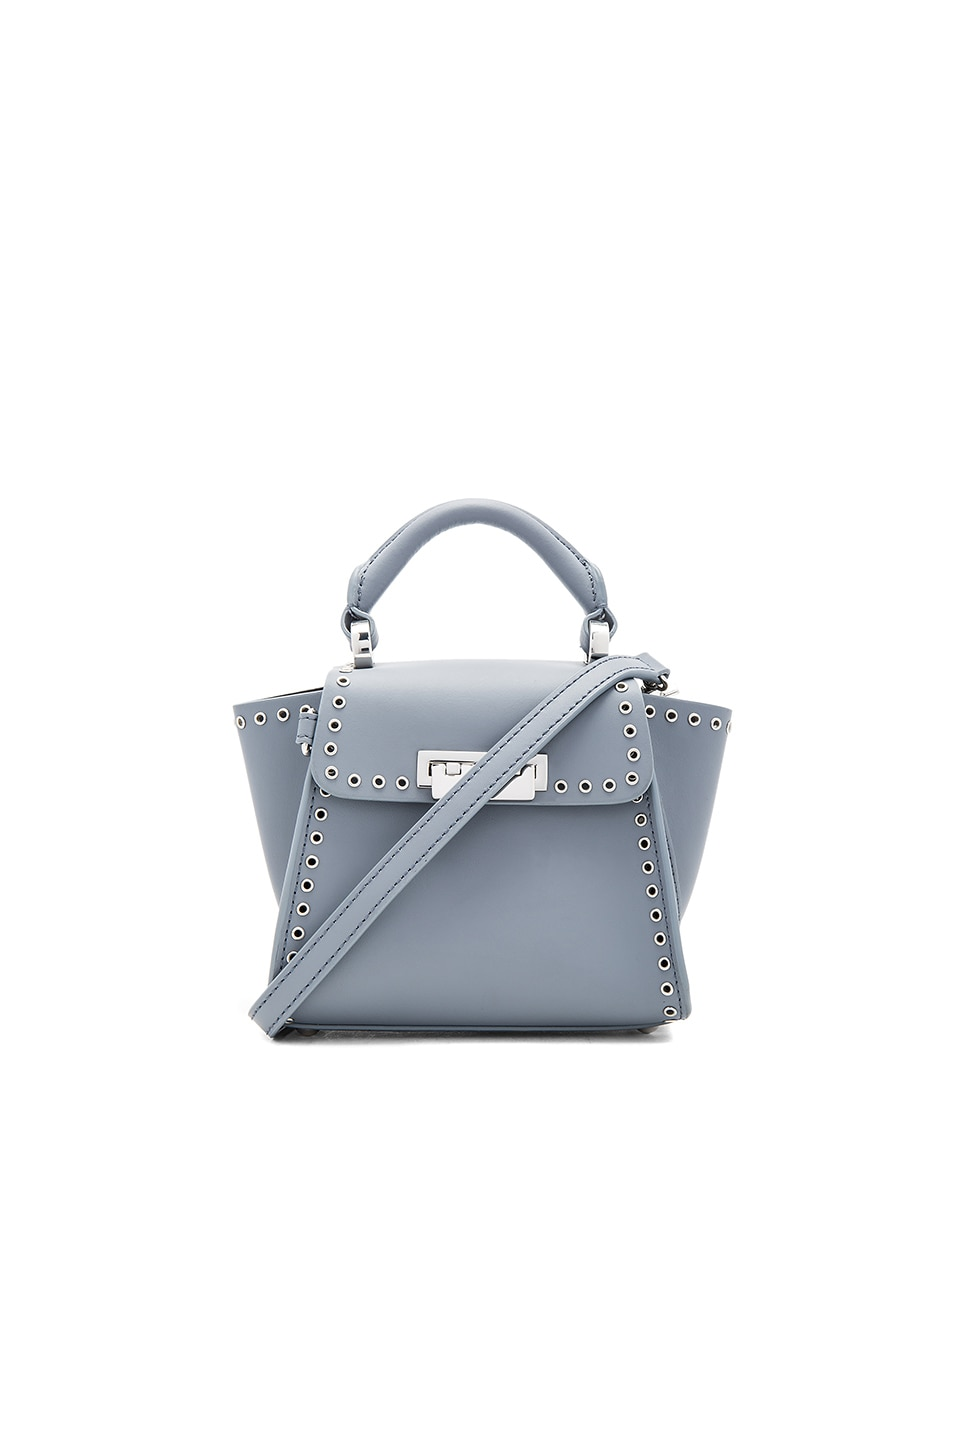 Zac Zac Posen Eartha Iconic Top Handle Mini Bag in Elephant